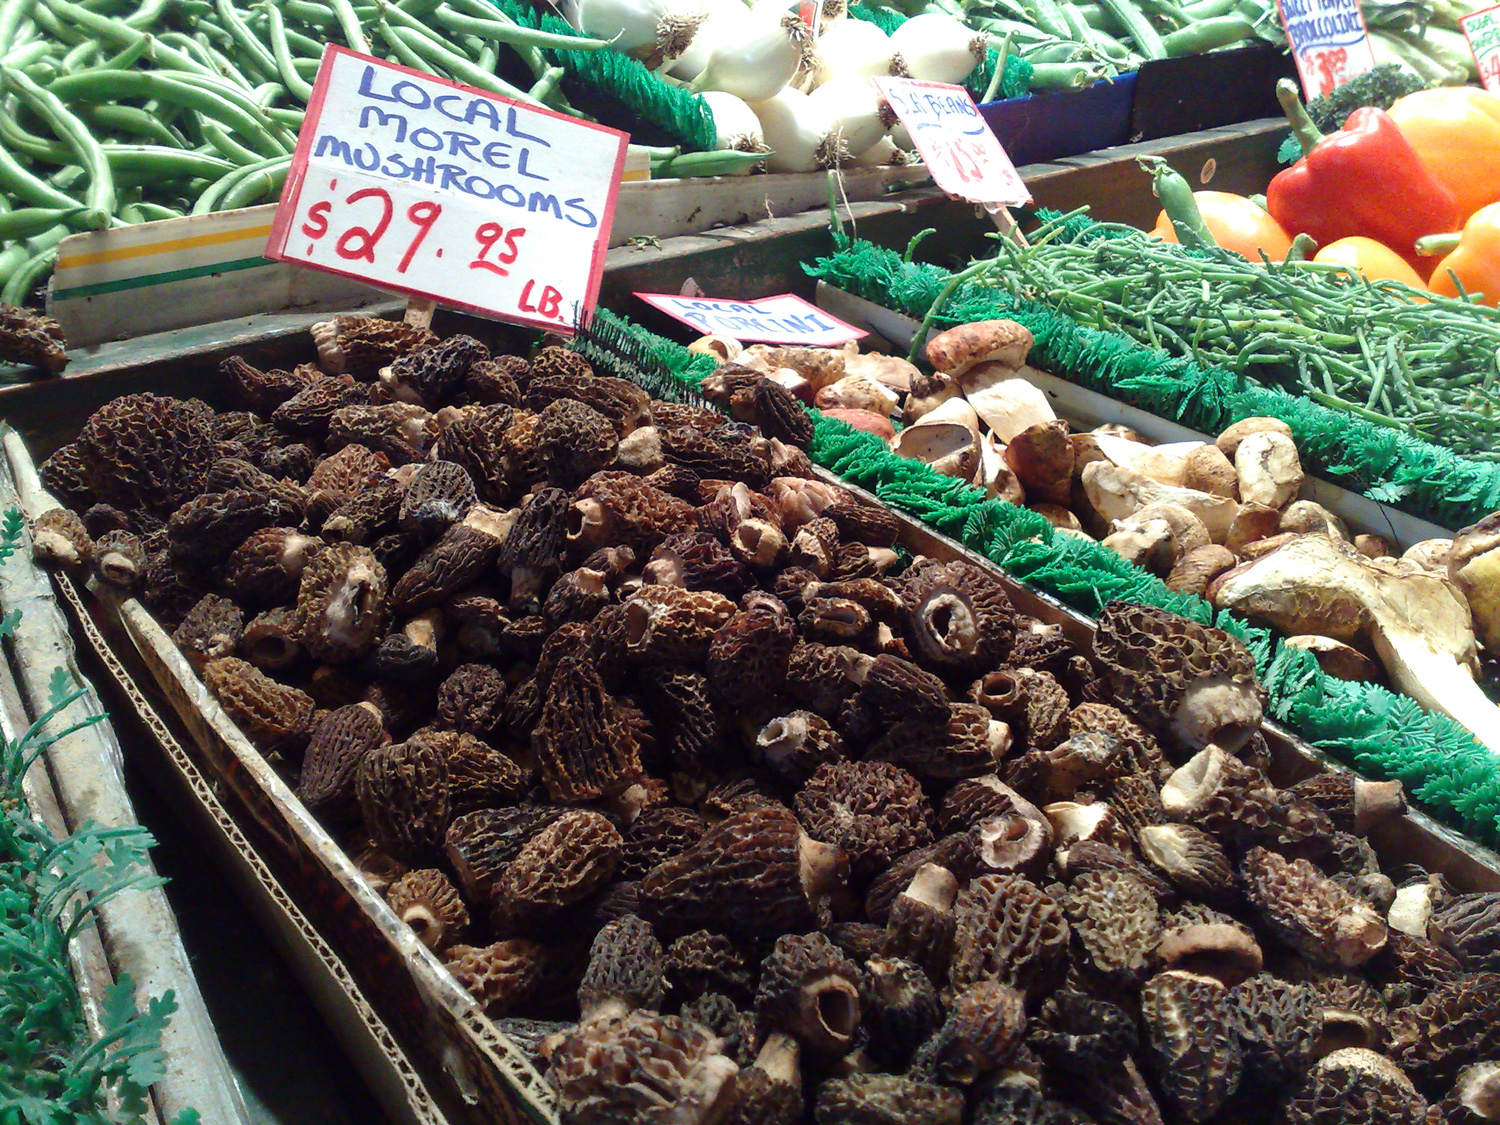 2015-03-11_pike-place-morels.jpg